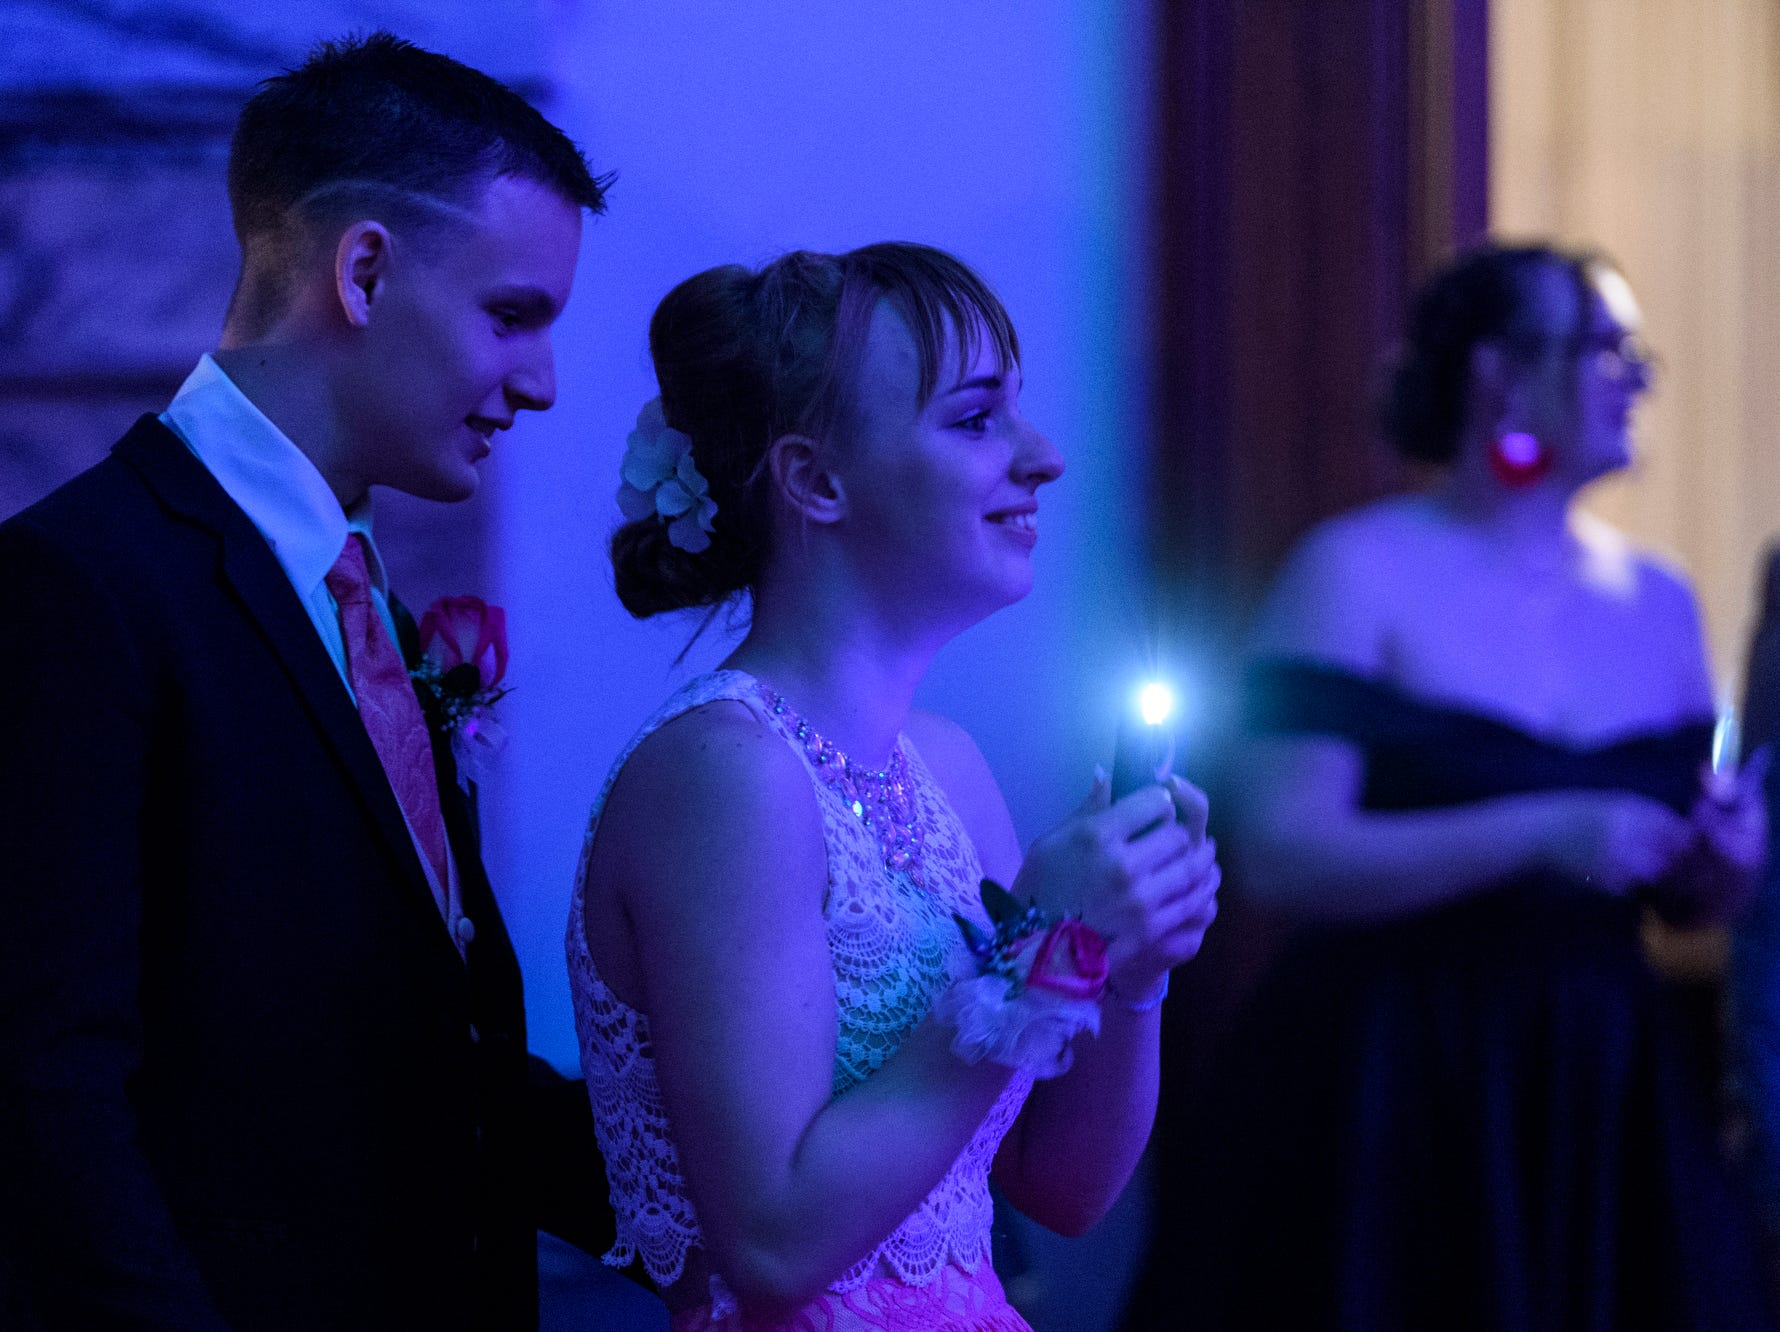 """Joseph Drury and Mary Devillez laugh as they watch people dance to the """"Cupid Shuffle"""" during Bosse High School's prom inside the Old Vanderburgh County Courthouse in downtown Evansville, Ind., Saturday, April 6, 2019."""